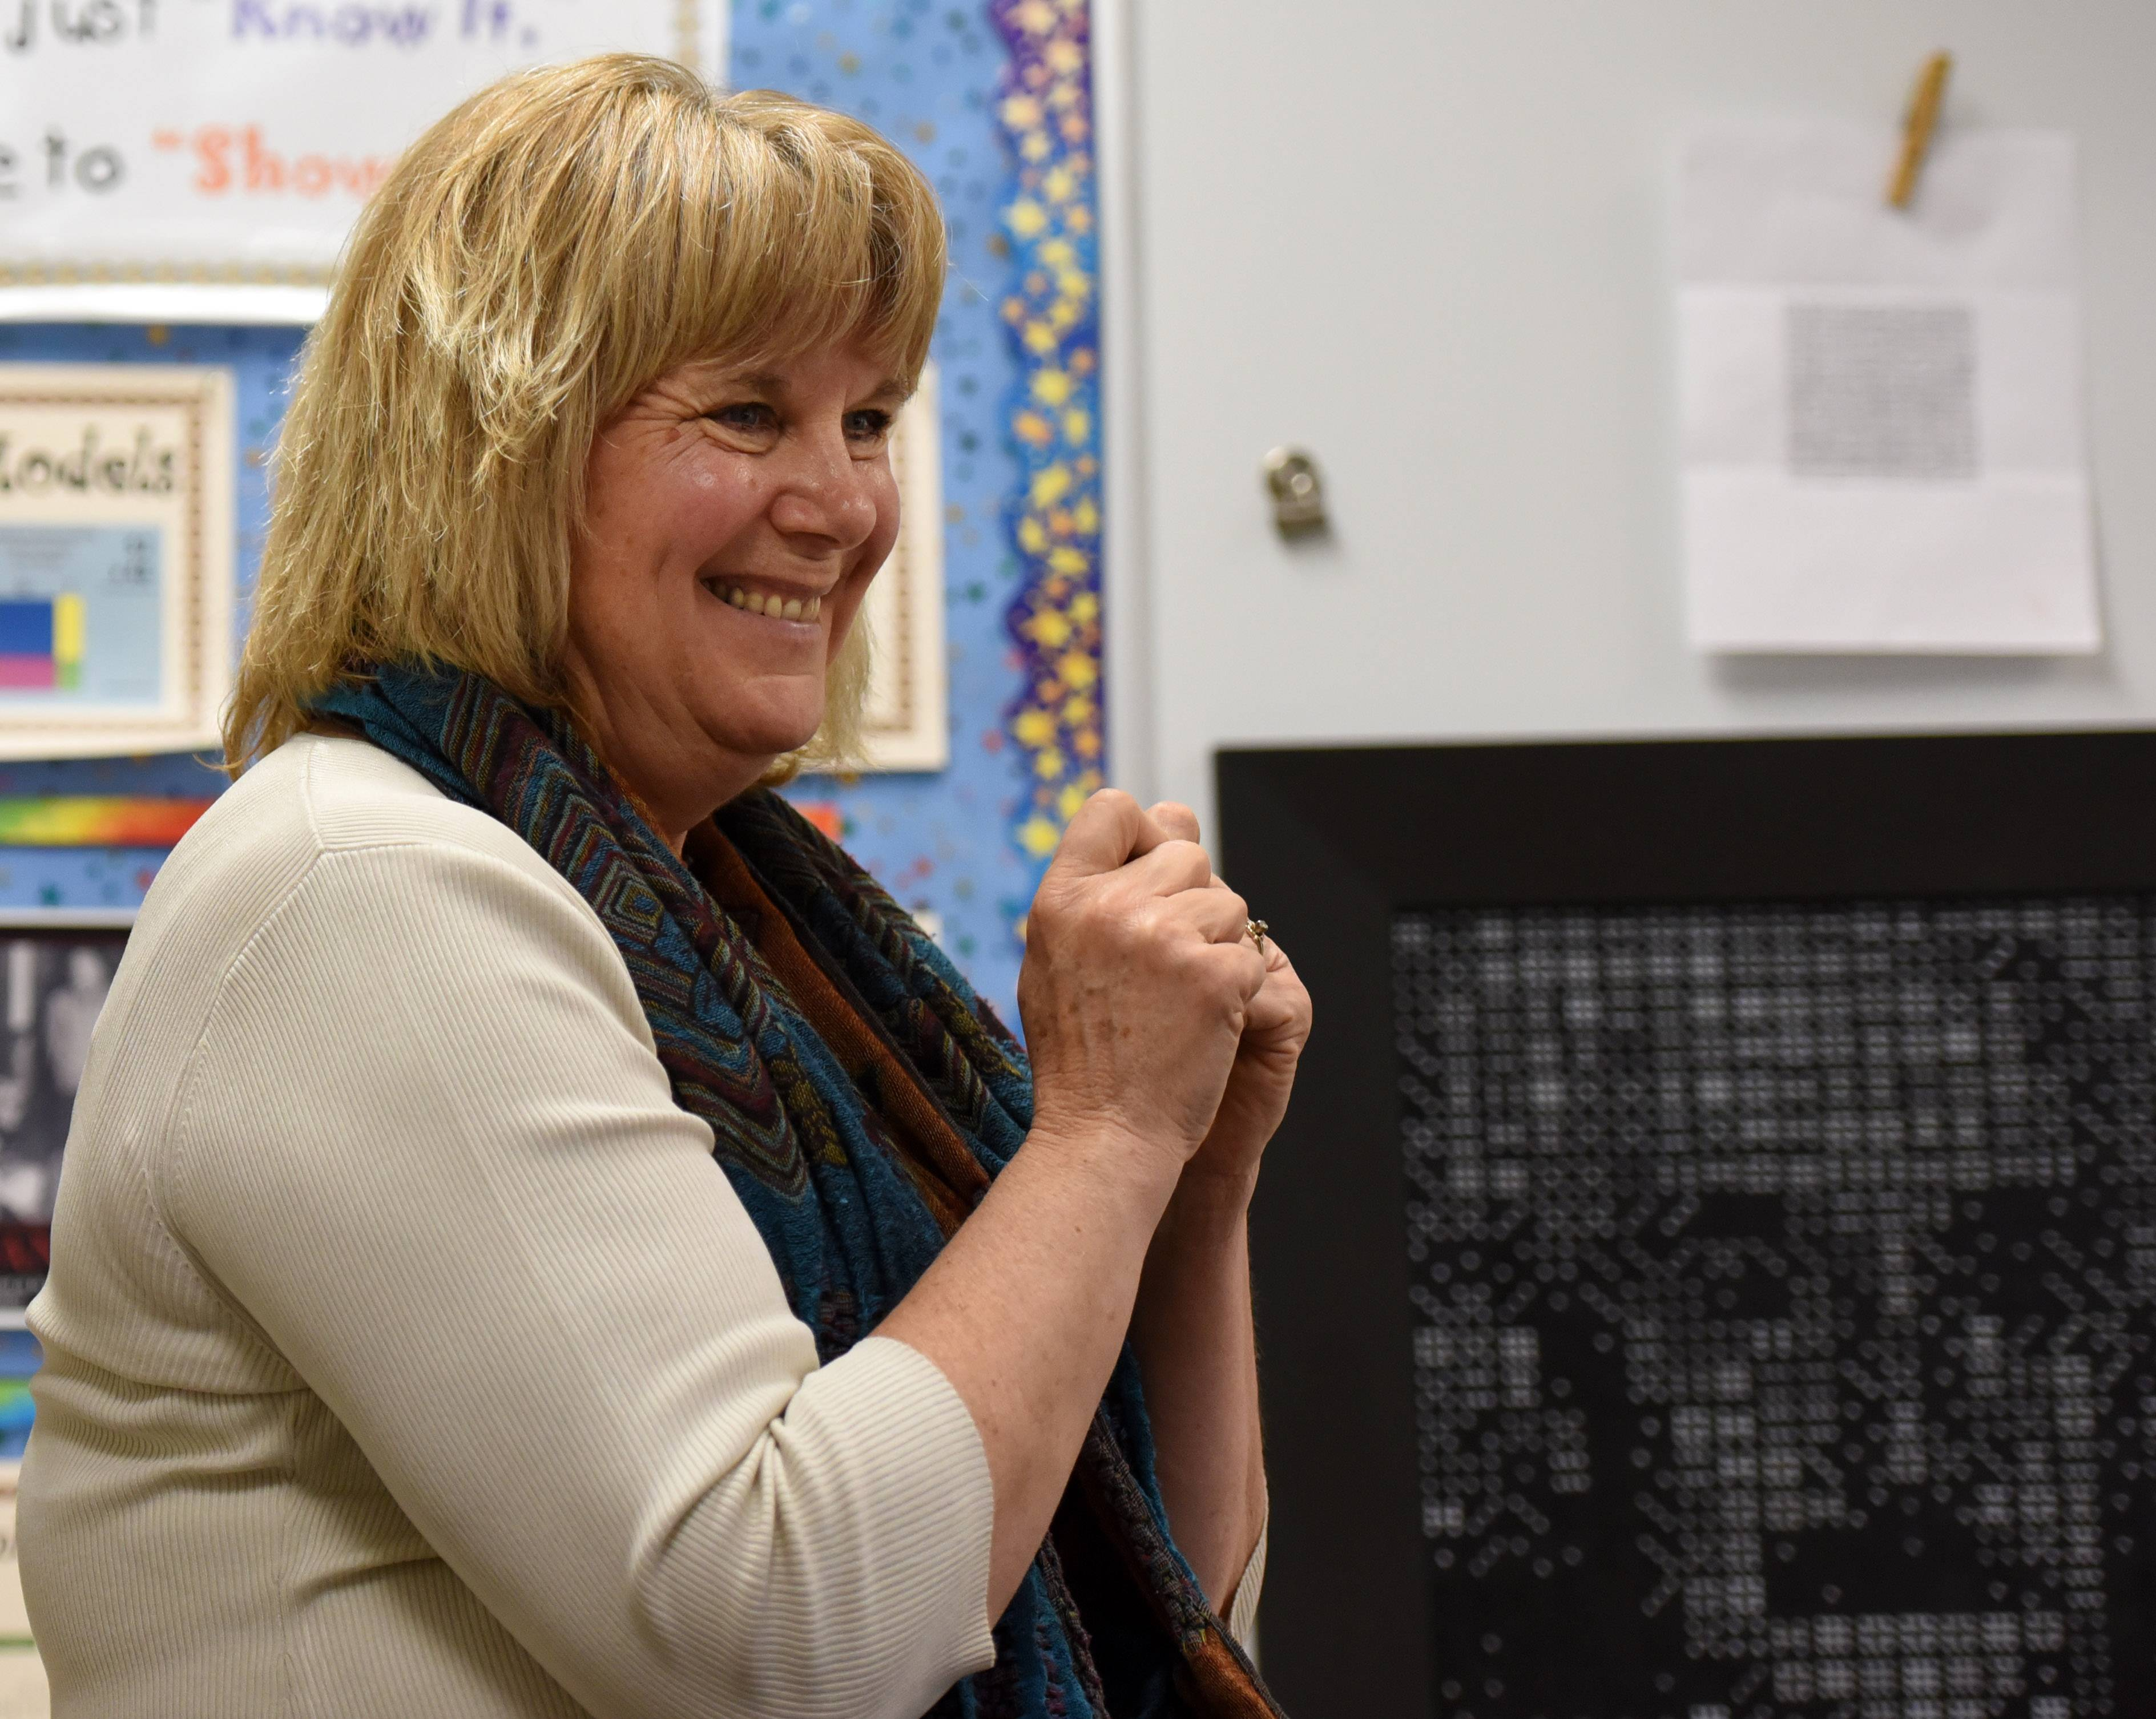 Nancy Krasinski, an acceleration and enrichment teacher at Williamsburg Elementary School in Geneva, draws lessons from famed physicist Albert Einstein to inspire her students.